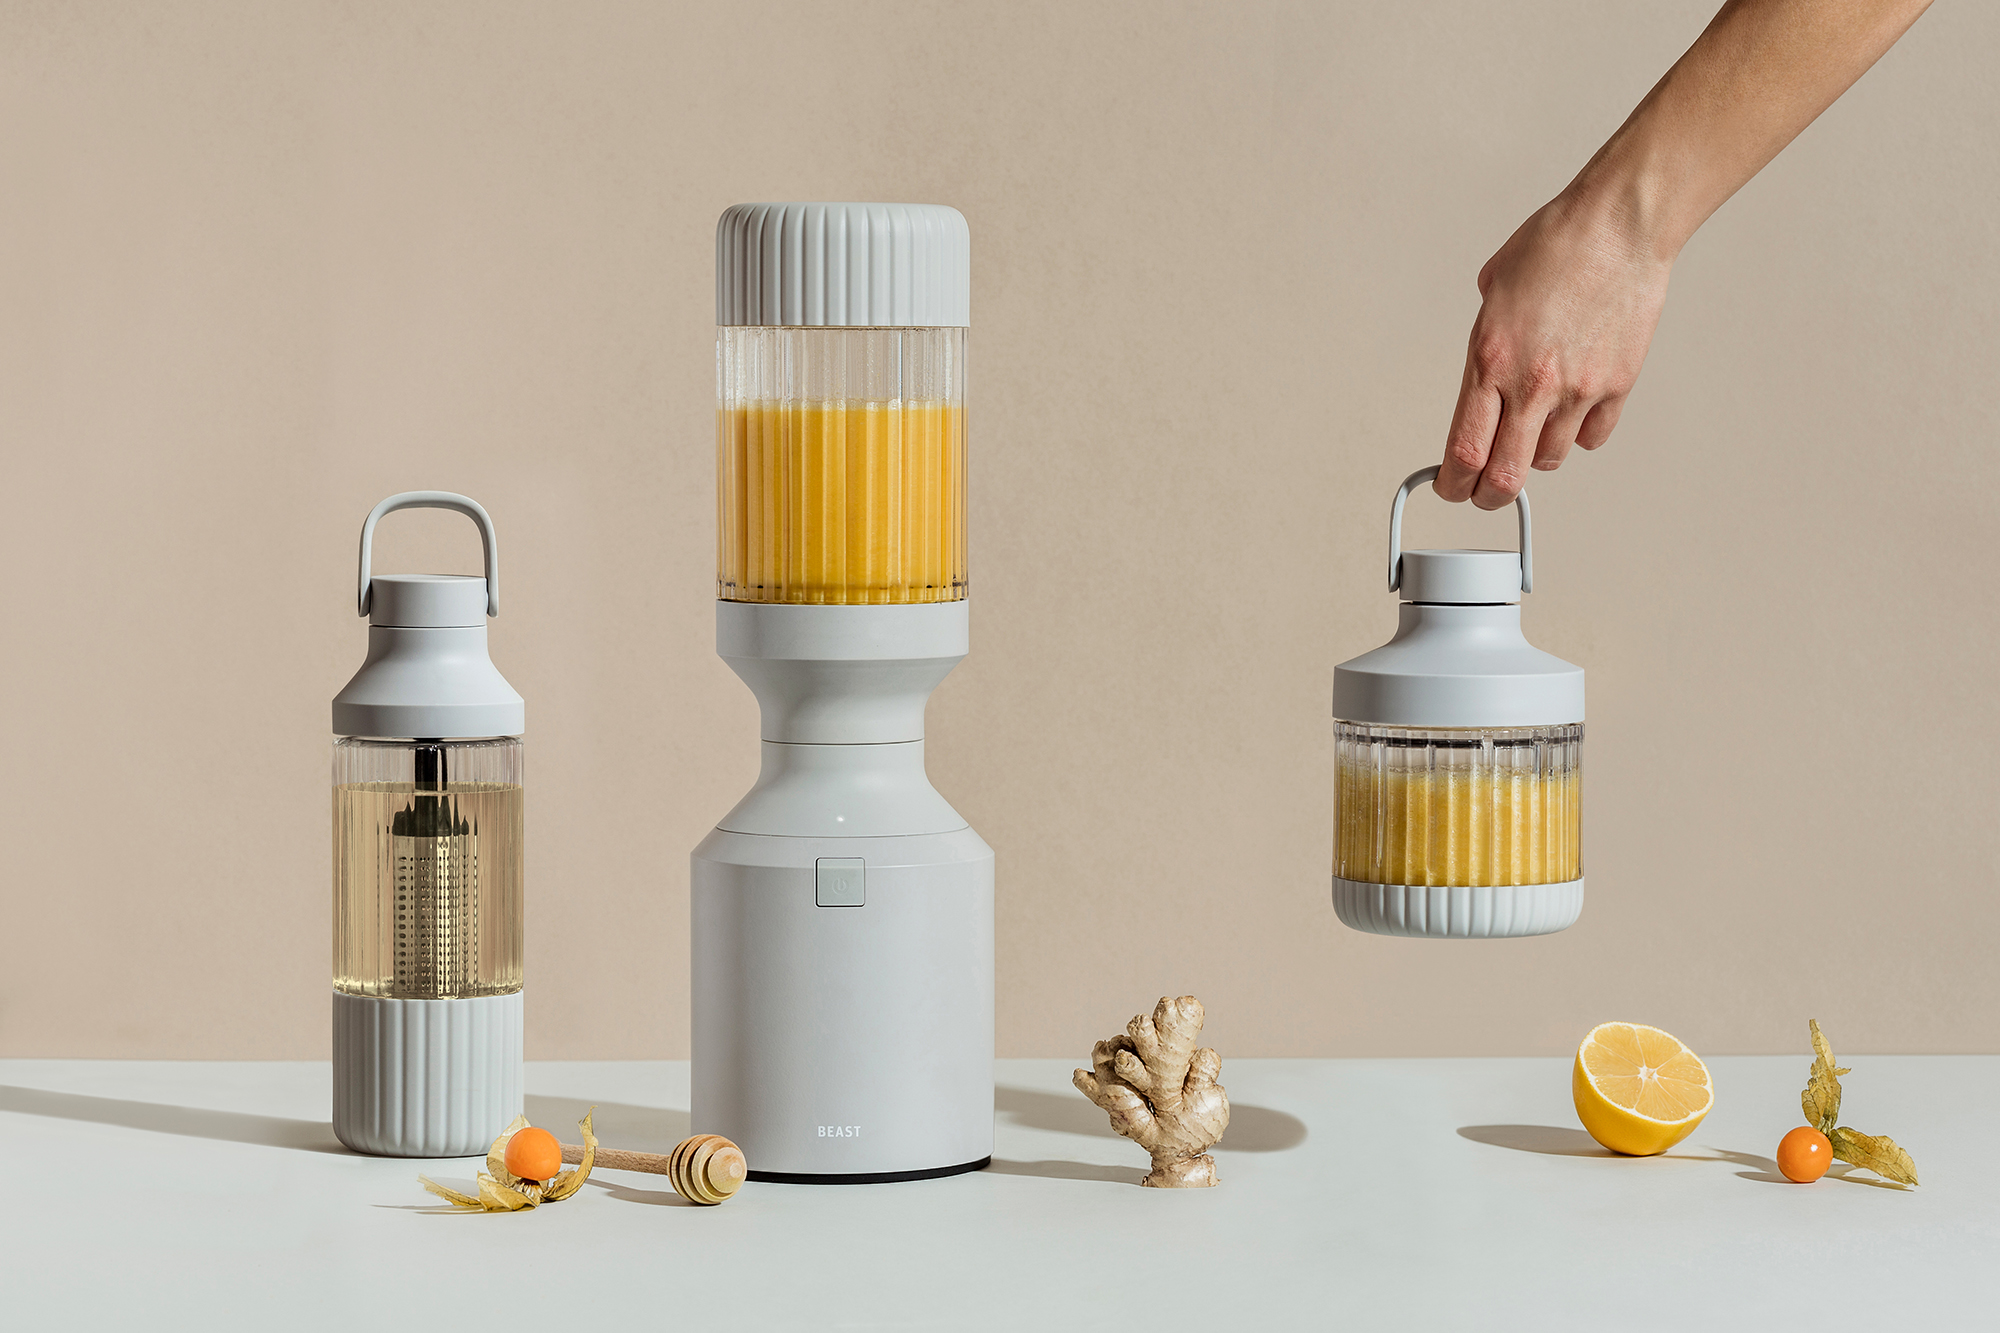 Beast Health - The Beast Blender with a hand holding a finished smoothie and other fruits and vegetables on a table